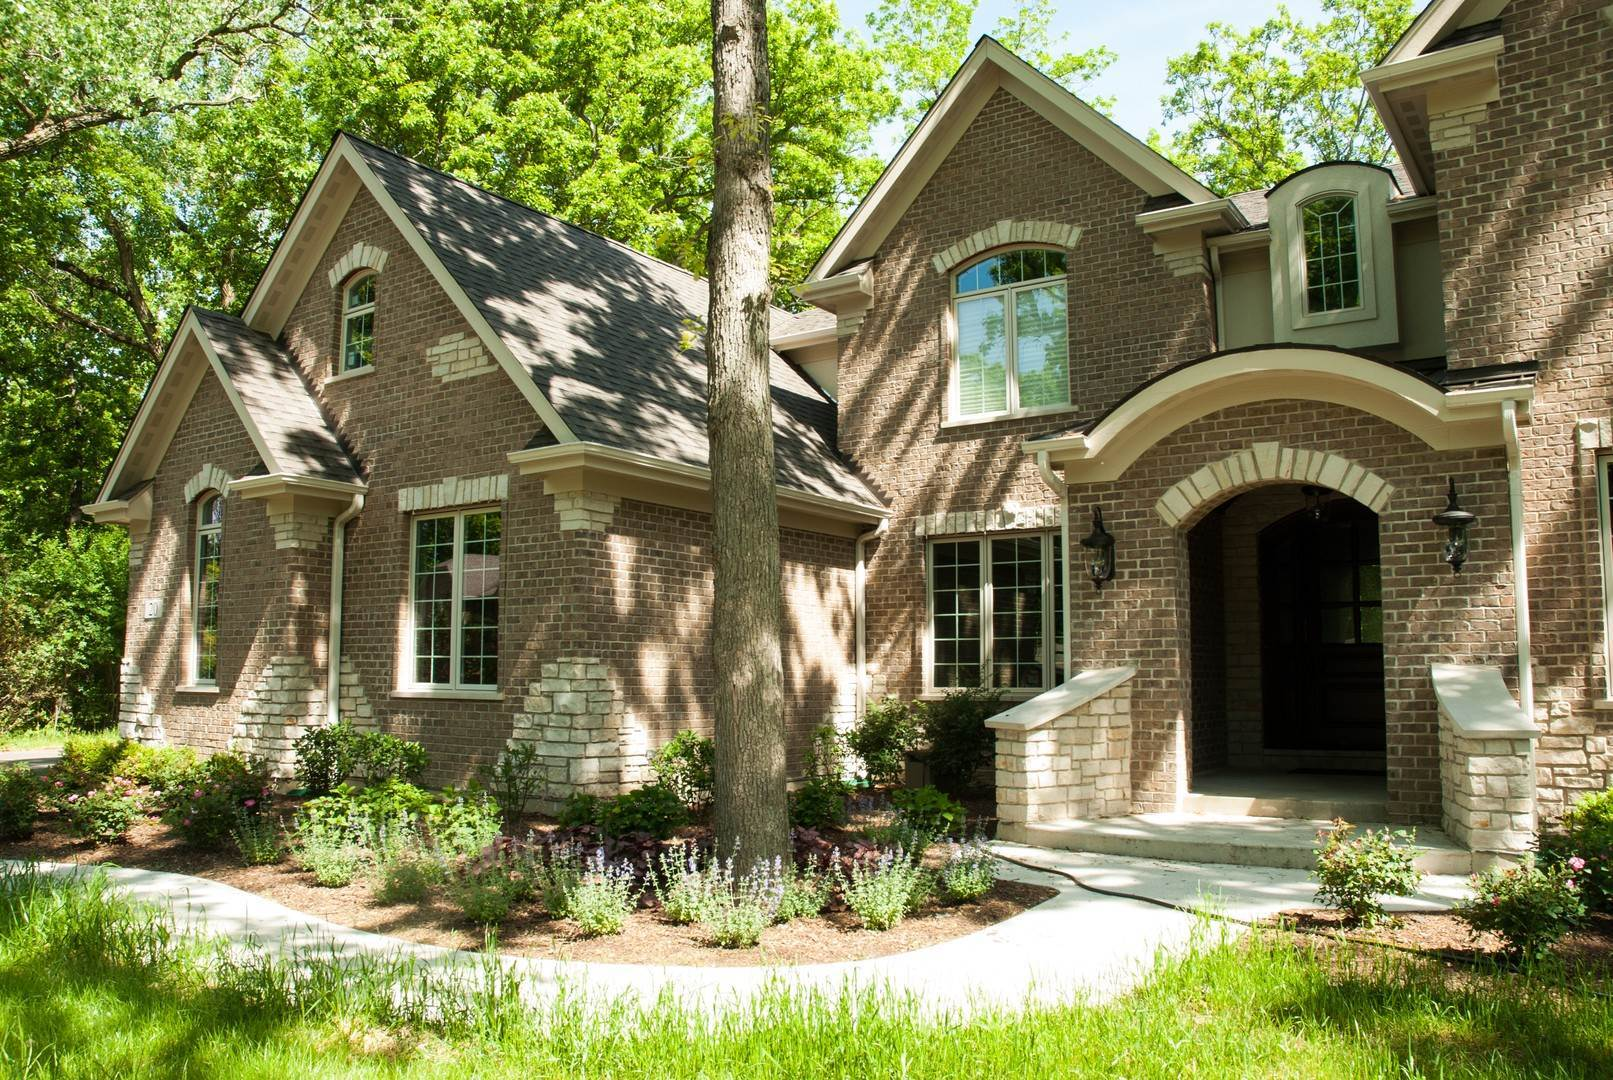 Single Family Homes for Sale at 1146 Steeple View Drive Long Grove, Illinois 60047 United States